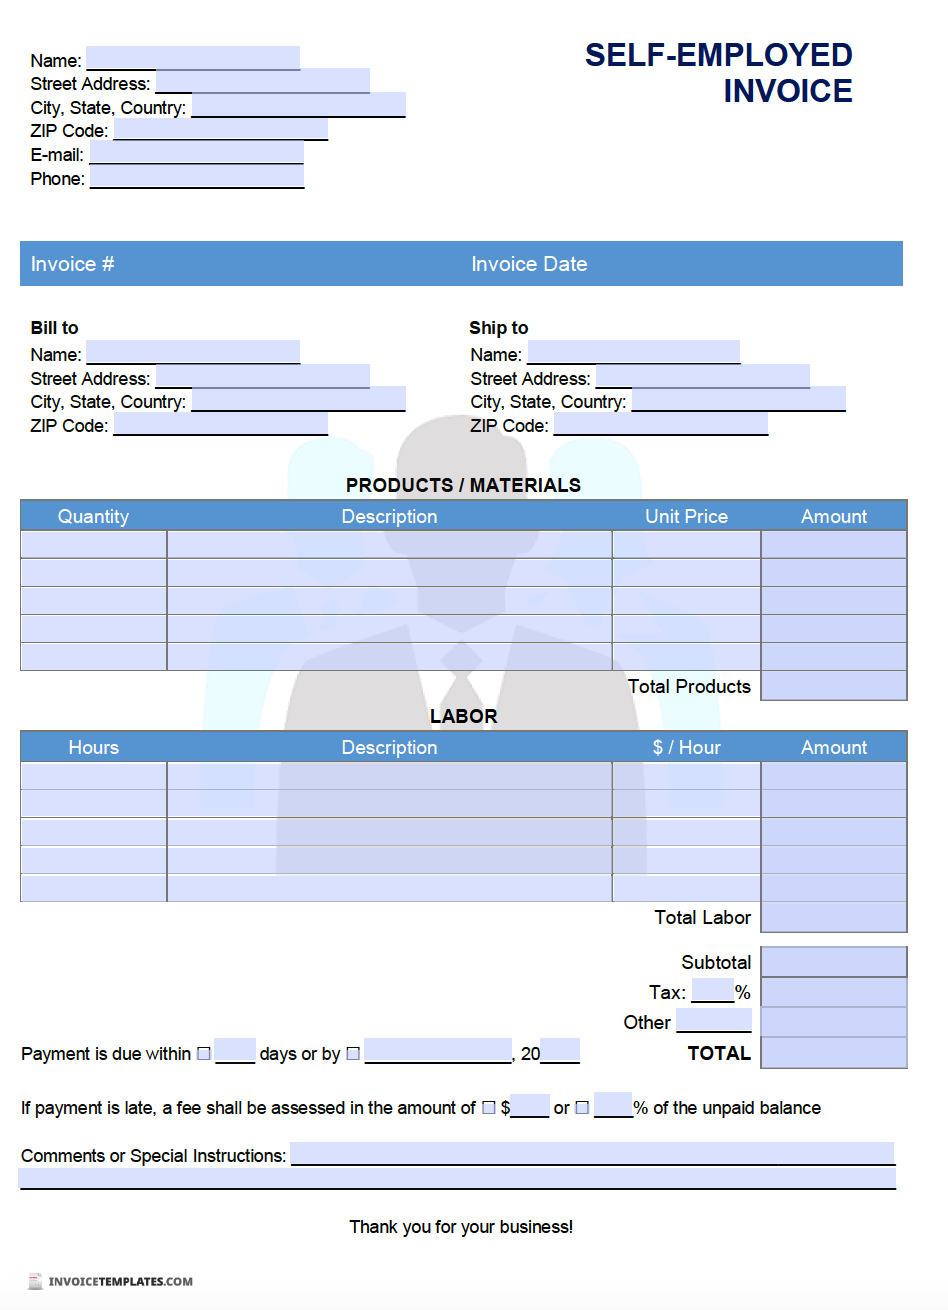 Free Self Employed Invoice Template Pdf Word Excel